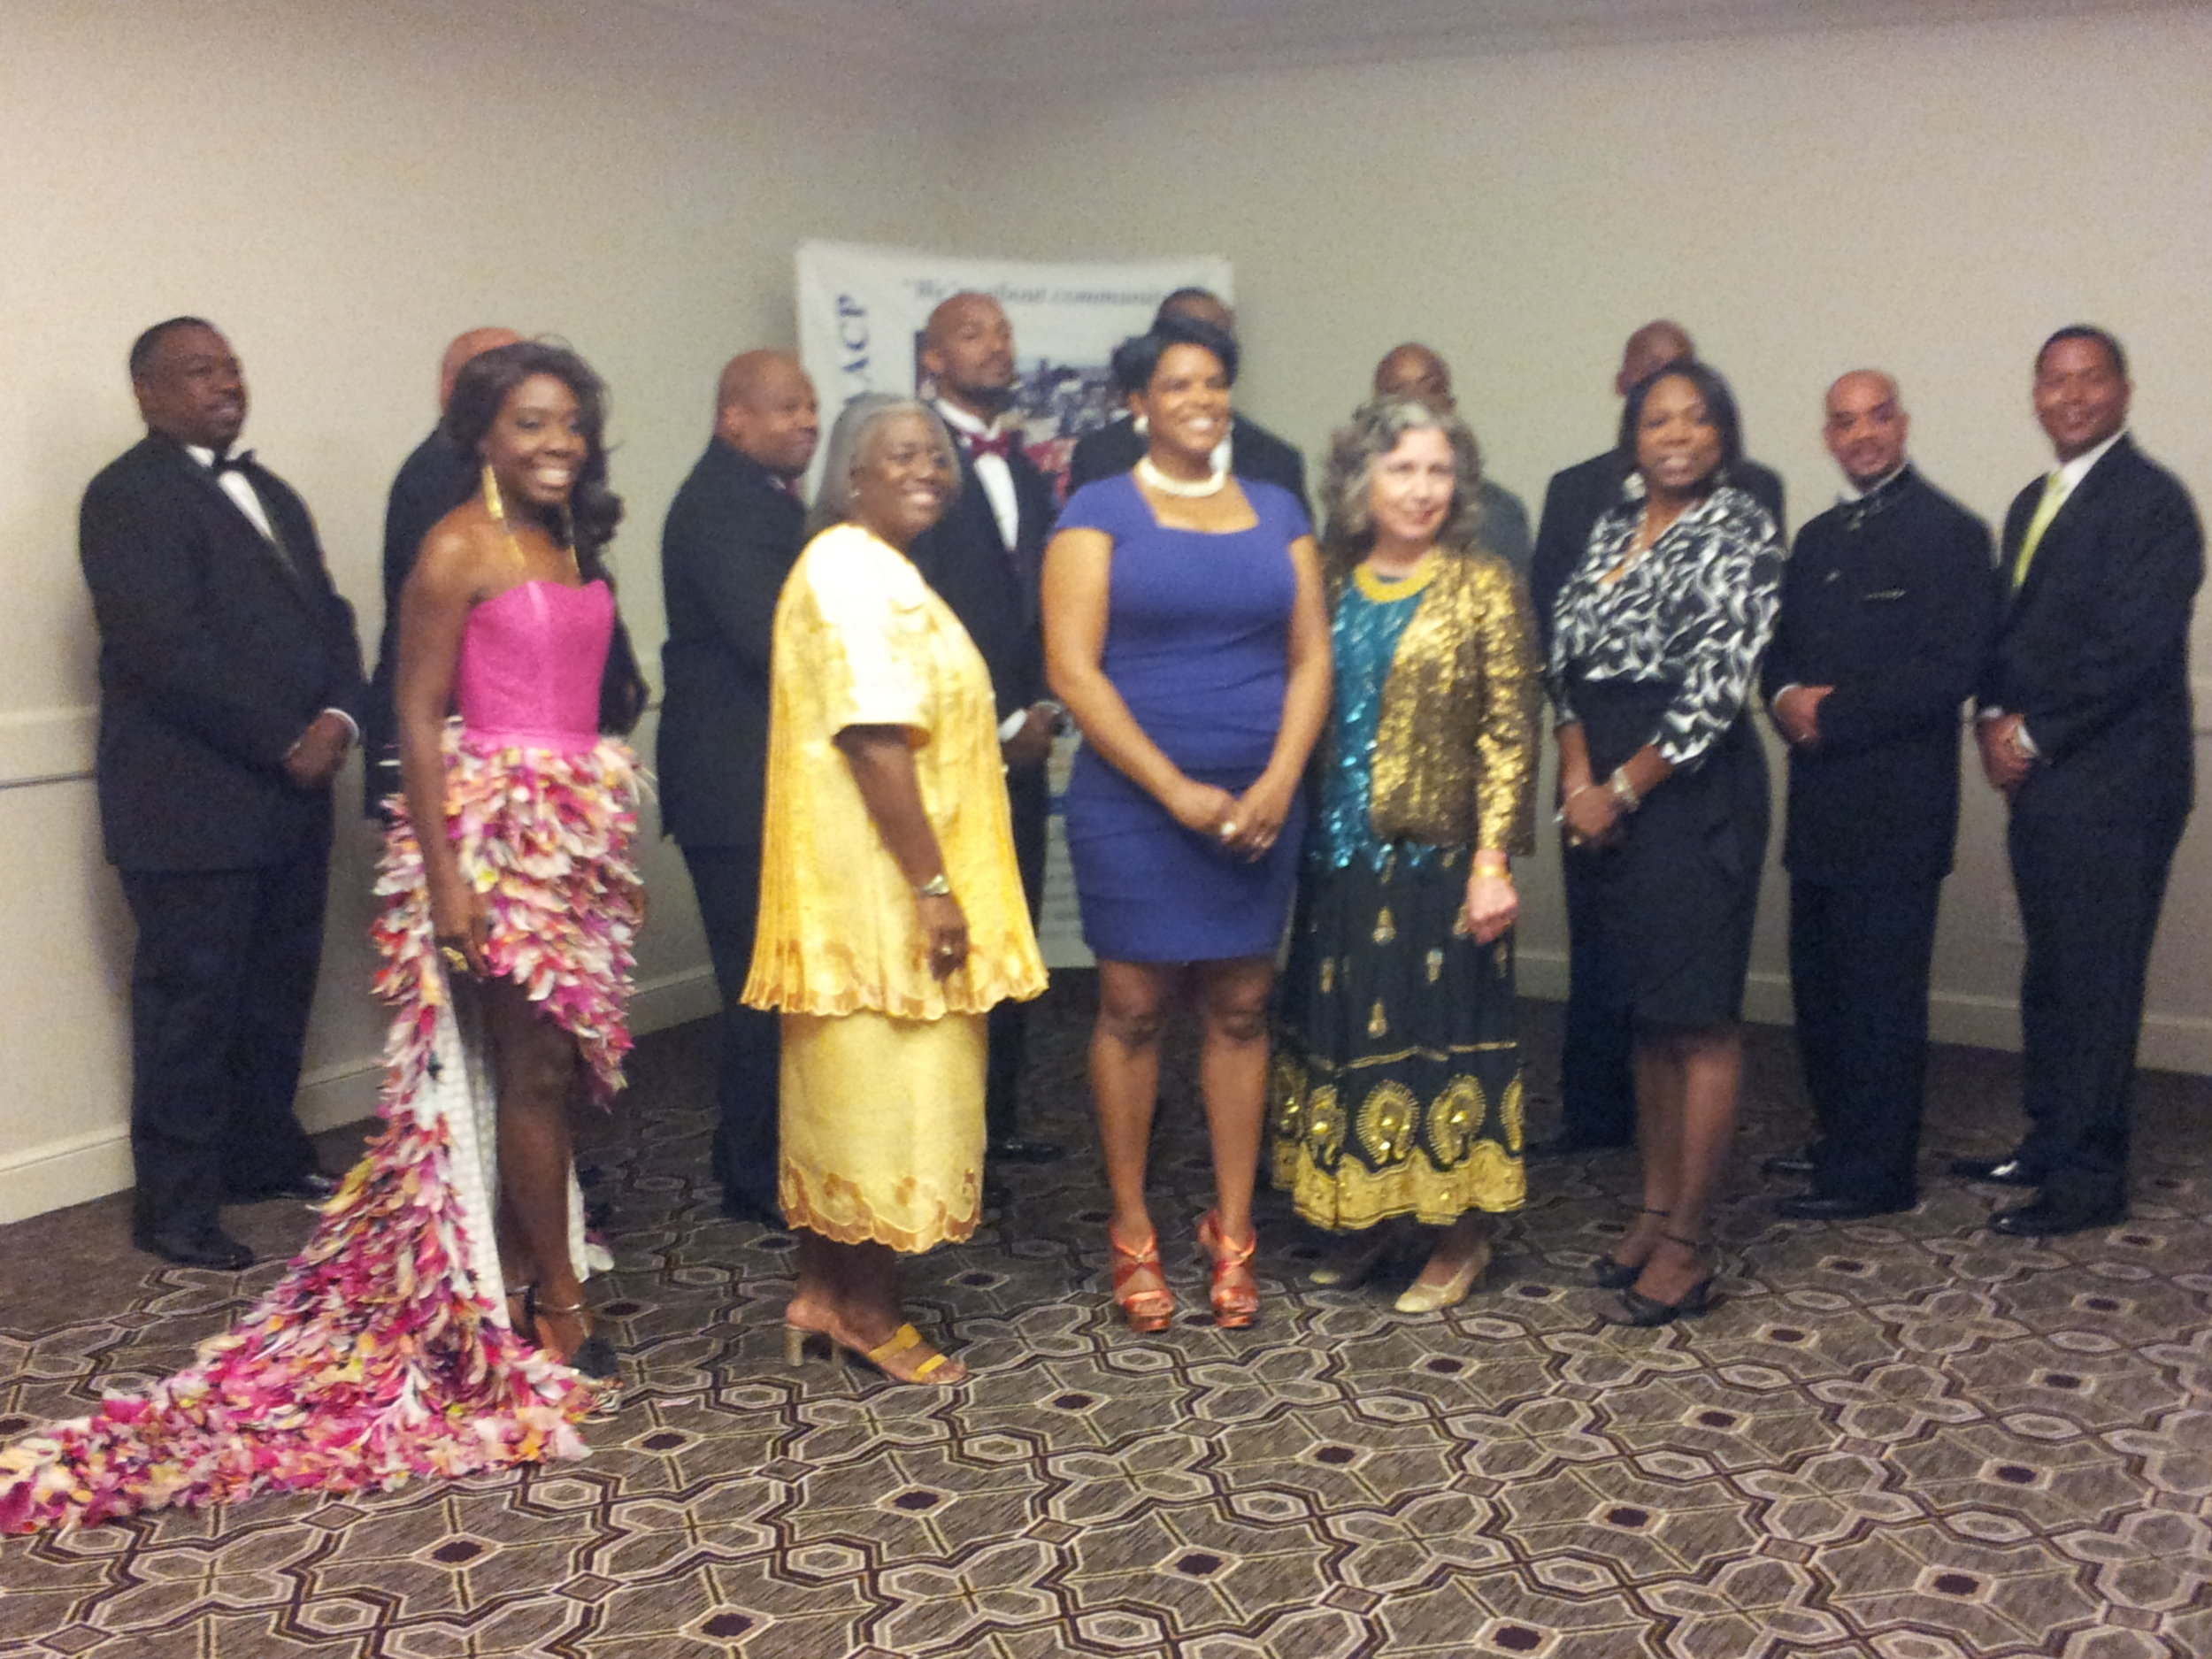 Upon my arrival to the event I was photographed along with my fellow nominees.